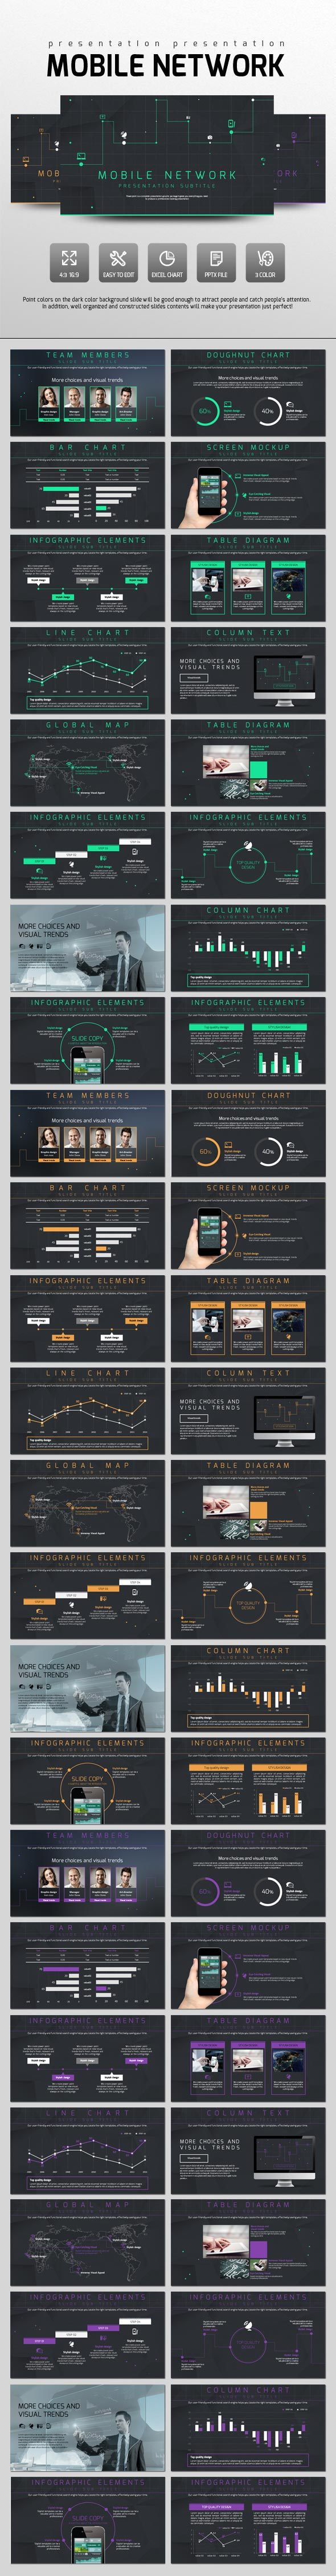 Mobile Network - PowerPoint Templates Presentation Templates